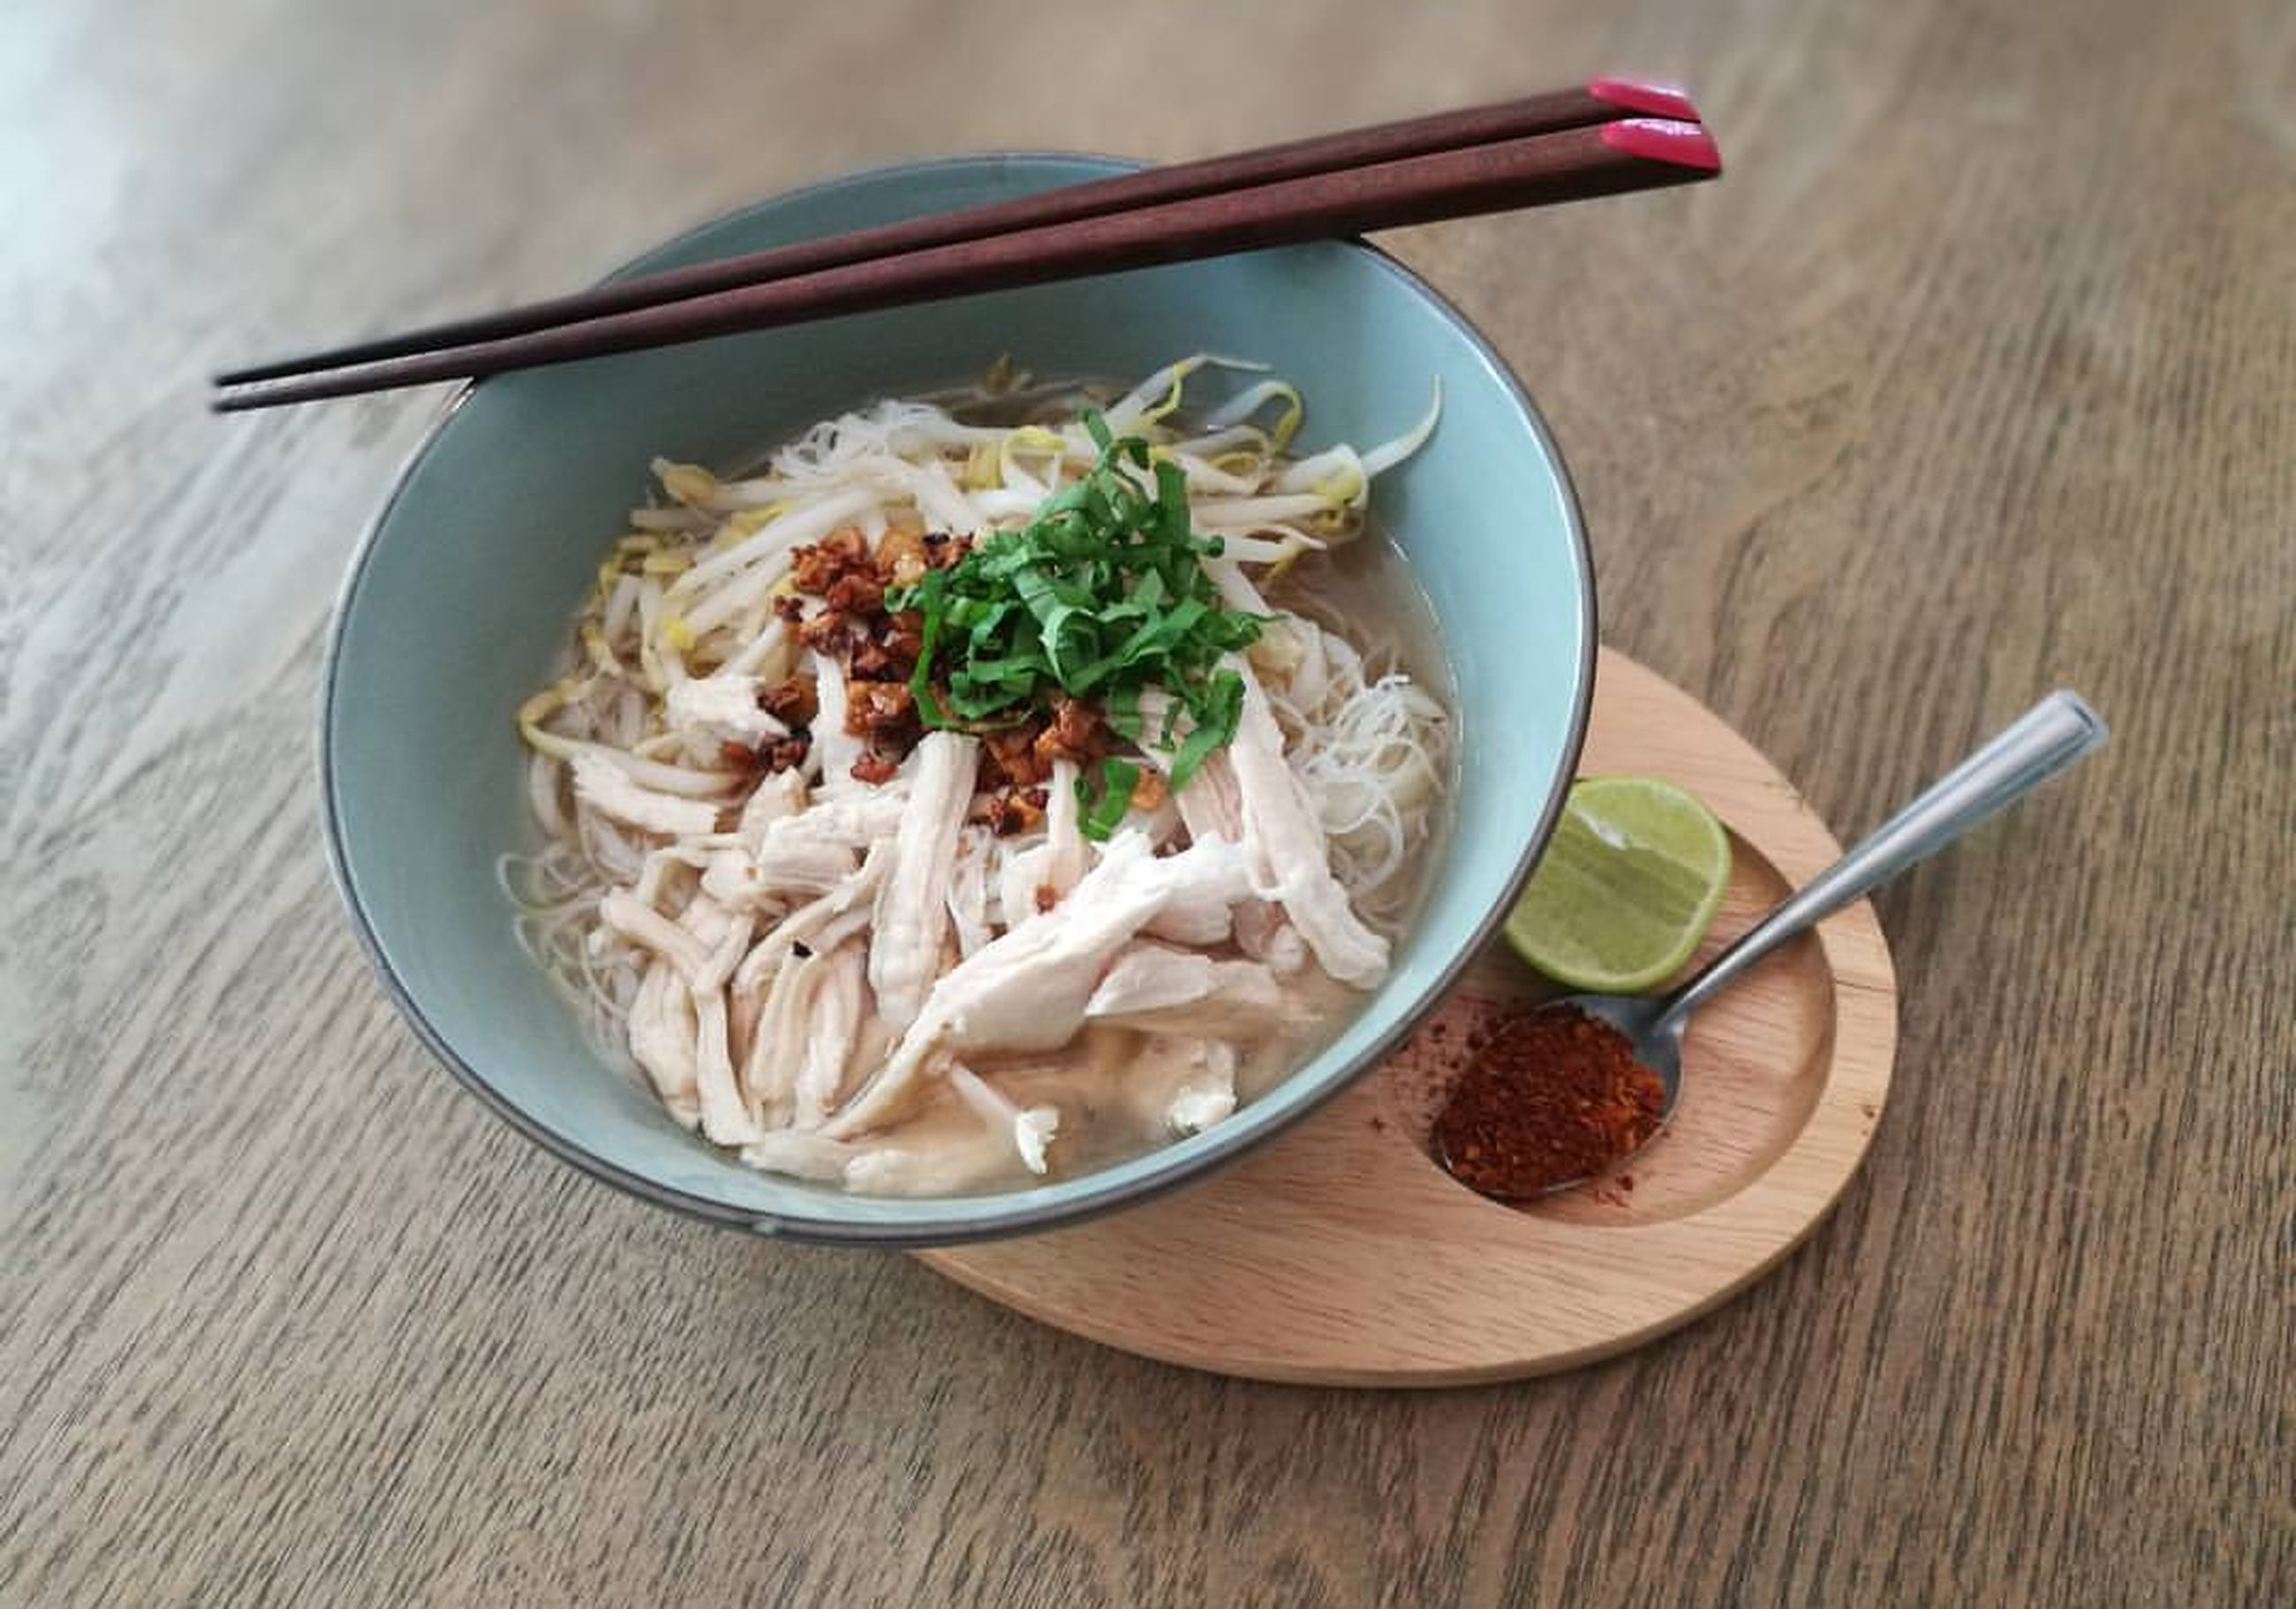 food and drink, bowl, high angle view, table, indoors, freshness, no people, healthy eating, wood - material, food, close-up, chopsticks, ready-to-eat, day, comfort food